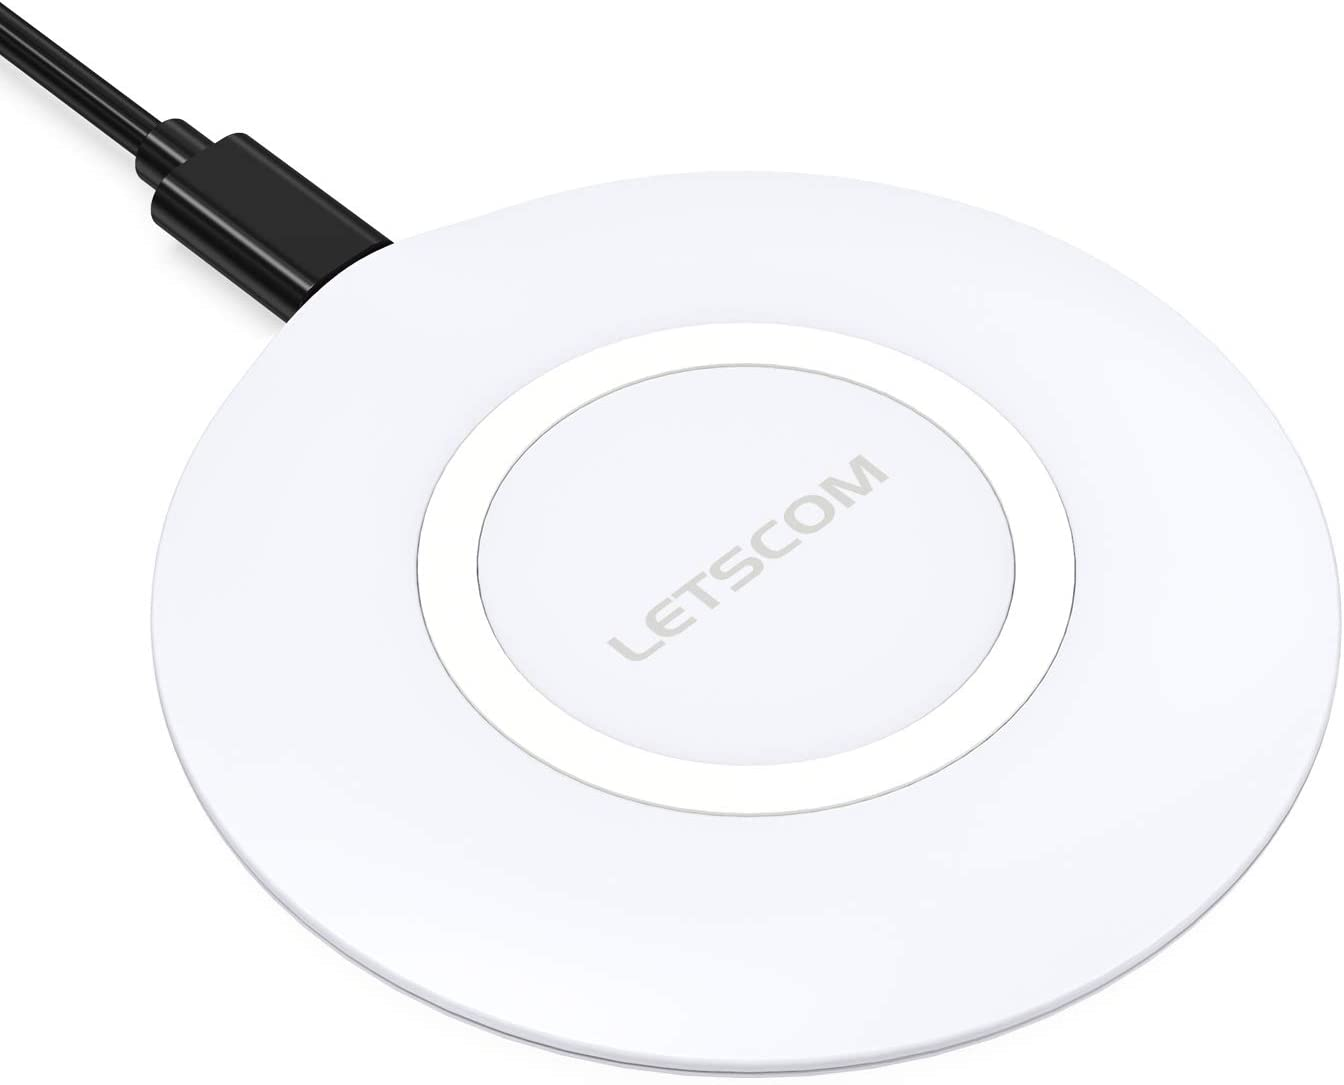 LETSCOM Ultra Slim Wireless Charger,Qi-Certified 15W Max Fast Wireless Charging Pad,Compatible with iPhone 11/11 Pro Max/XS Max/XR/XS/X/8/8+,Galaxy Note 10/Note 10+/S10/S10+/S10E (No AC Adapter)